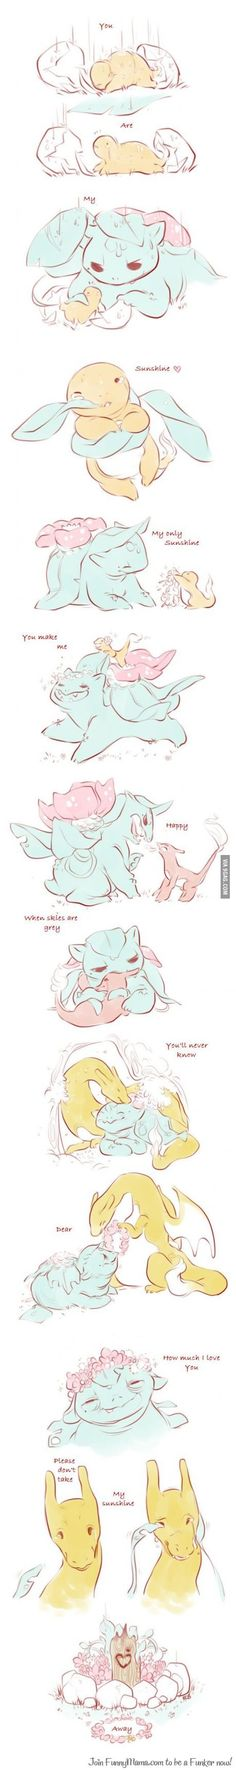 Sad Pokemon story. I'm just going to go cry in that corner over there...